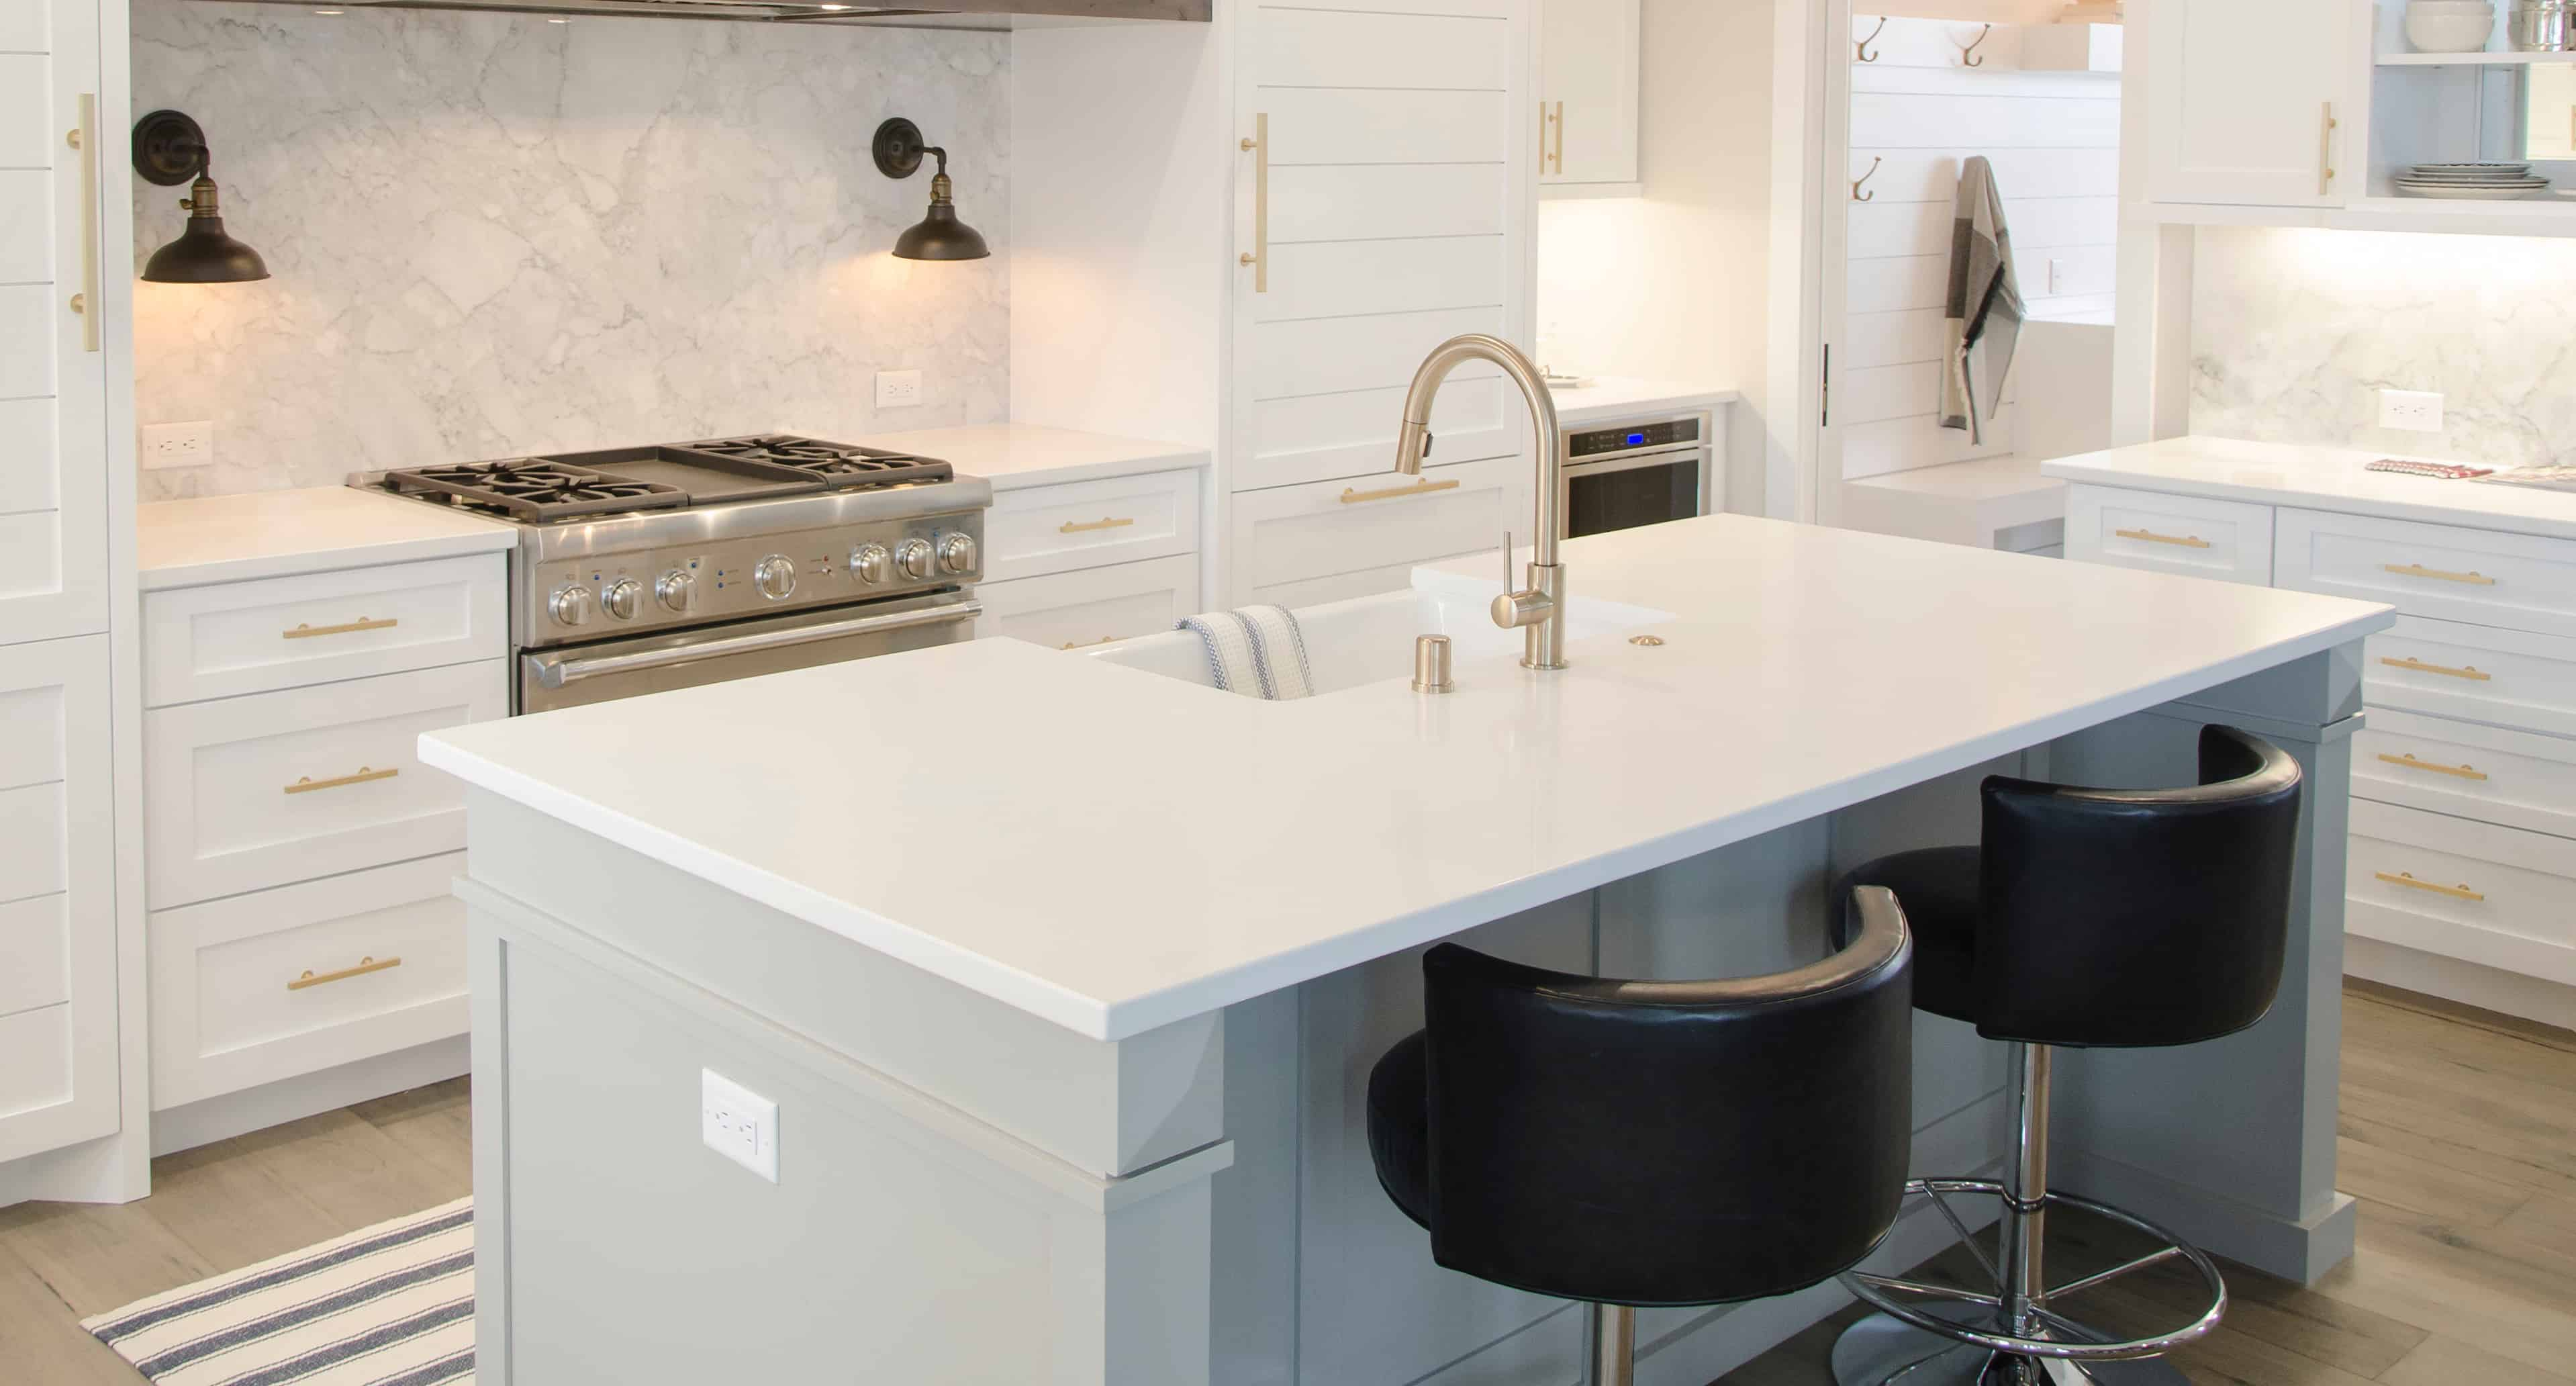 12 Pros Cons Of Quartz Countertops Are They Worth It Prudent Reviews